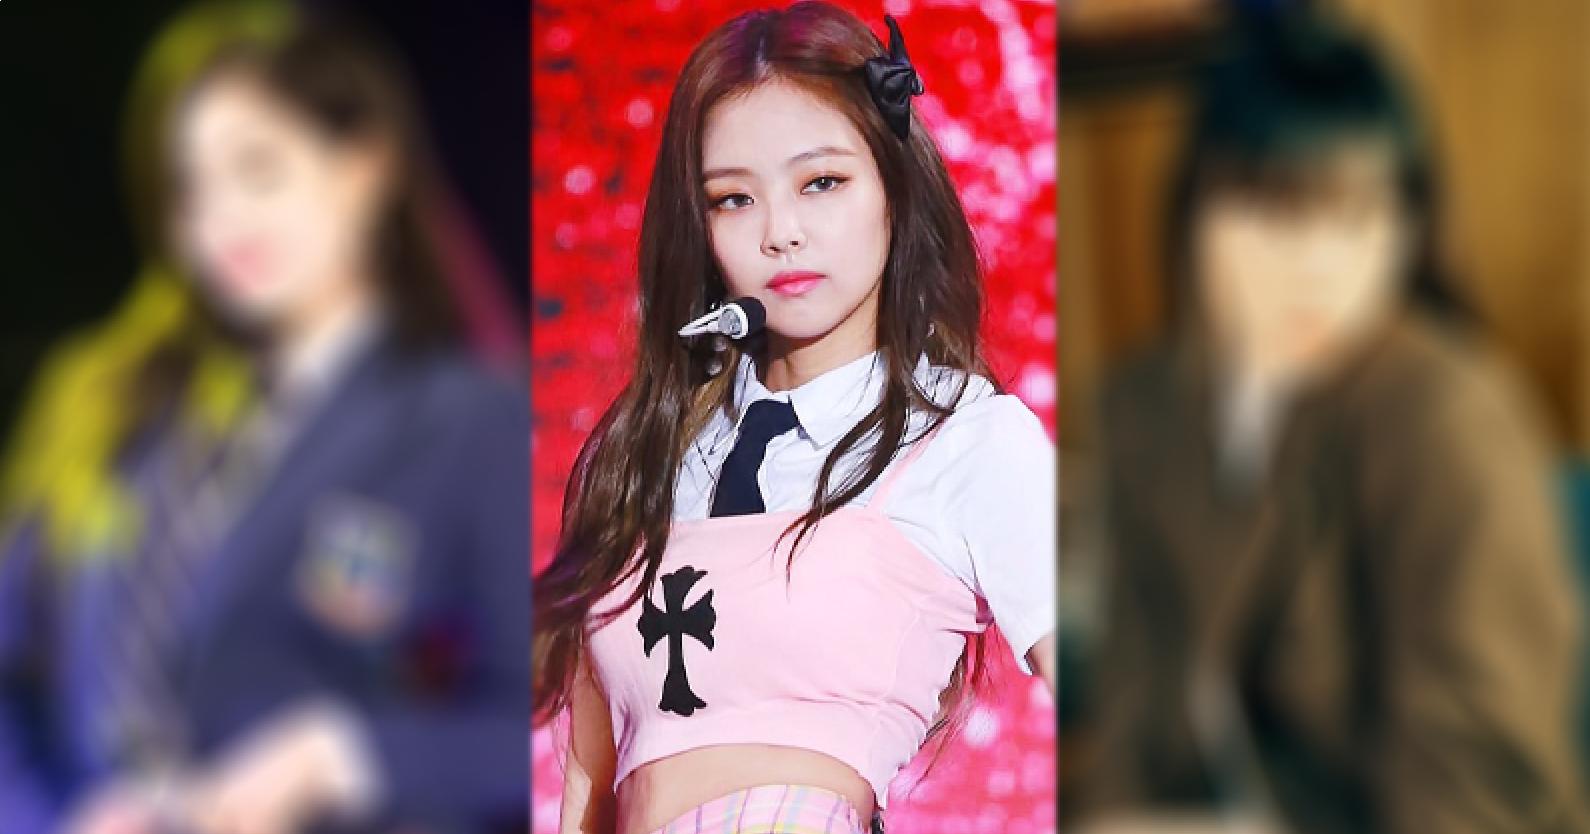 6 Female K-pop Idols Who Are Potentially Taken Over 'High Teen' Title Aside from BLACKPINK Jennie